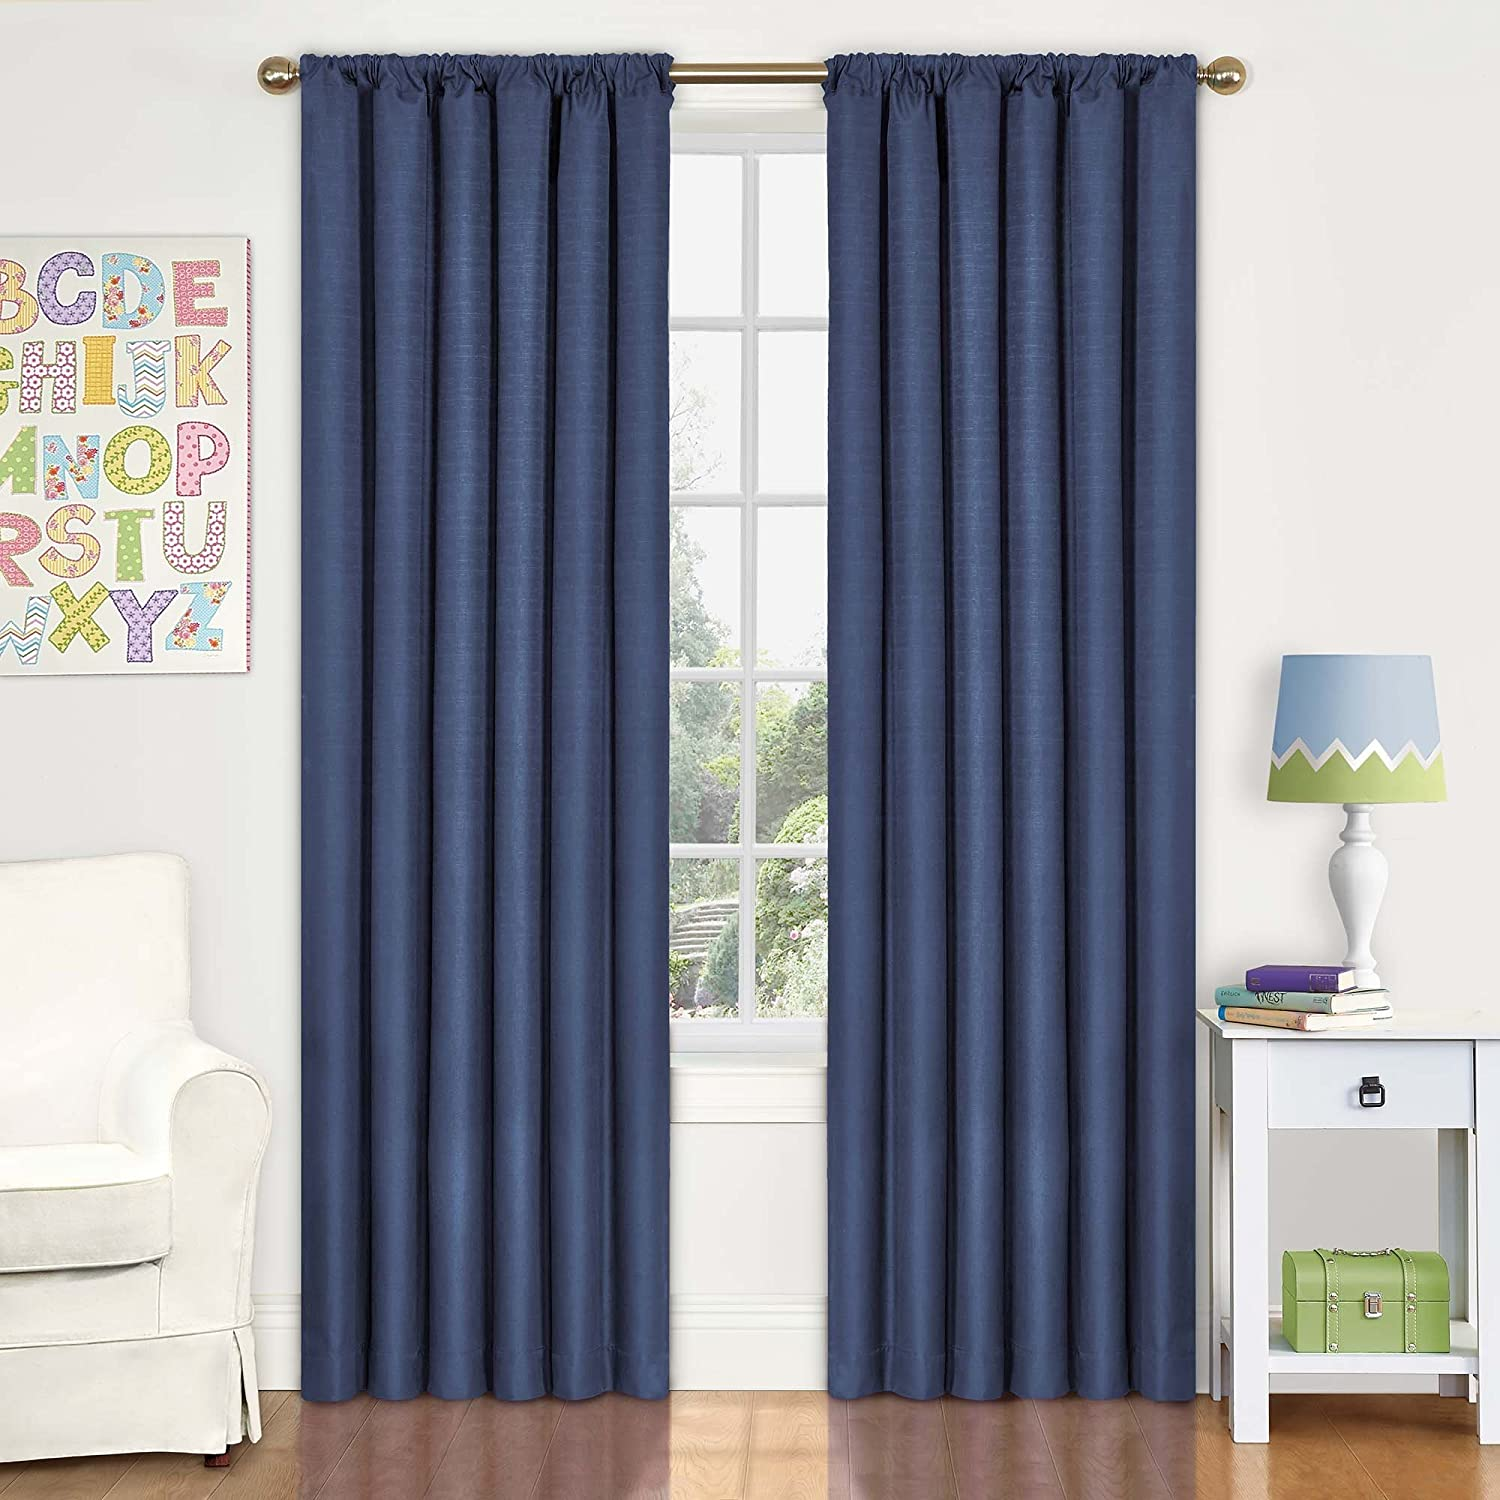 Great Amazon.com: Eclipse Kids Kendall Blackout Thermal Curtain Panel,Denim, 42  Inch X 63 Inch: Home U0026 Kitchen